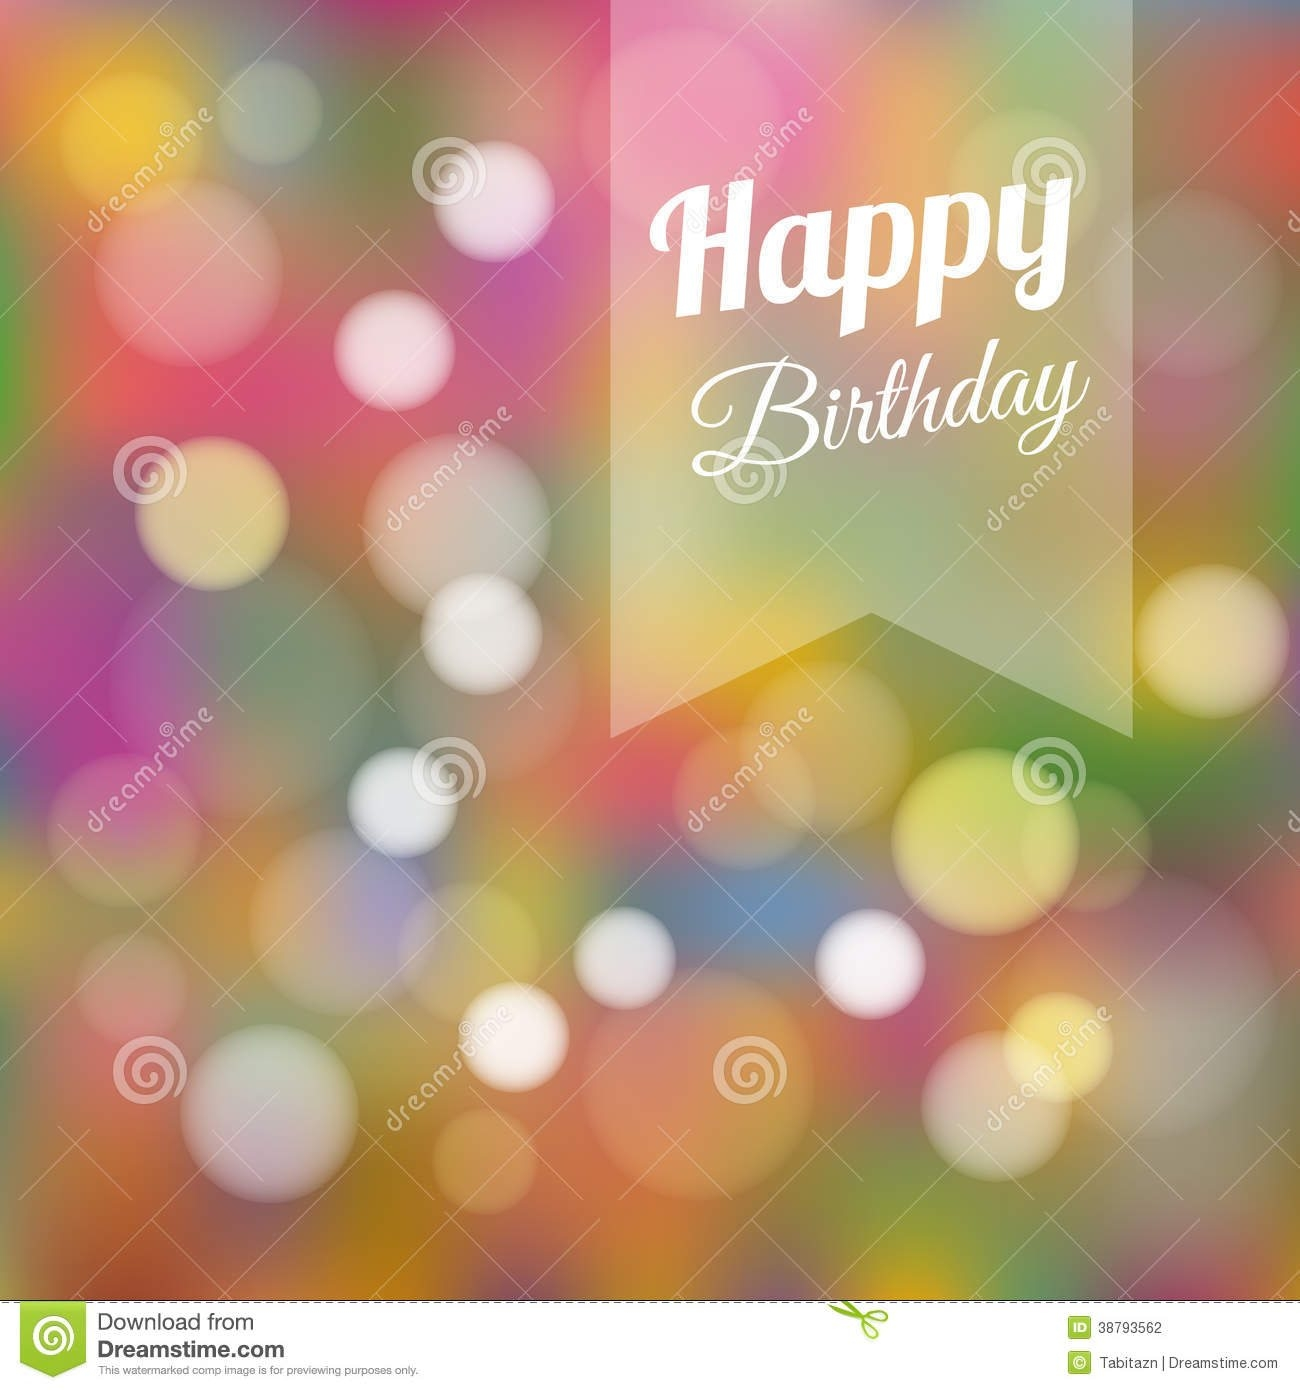 background design for birthday invitation ; birthday-card-invitation-background-stock-vector-image-38793562-for-birthday-card-invitation-background-design